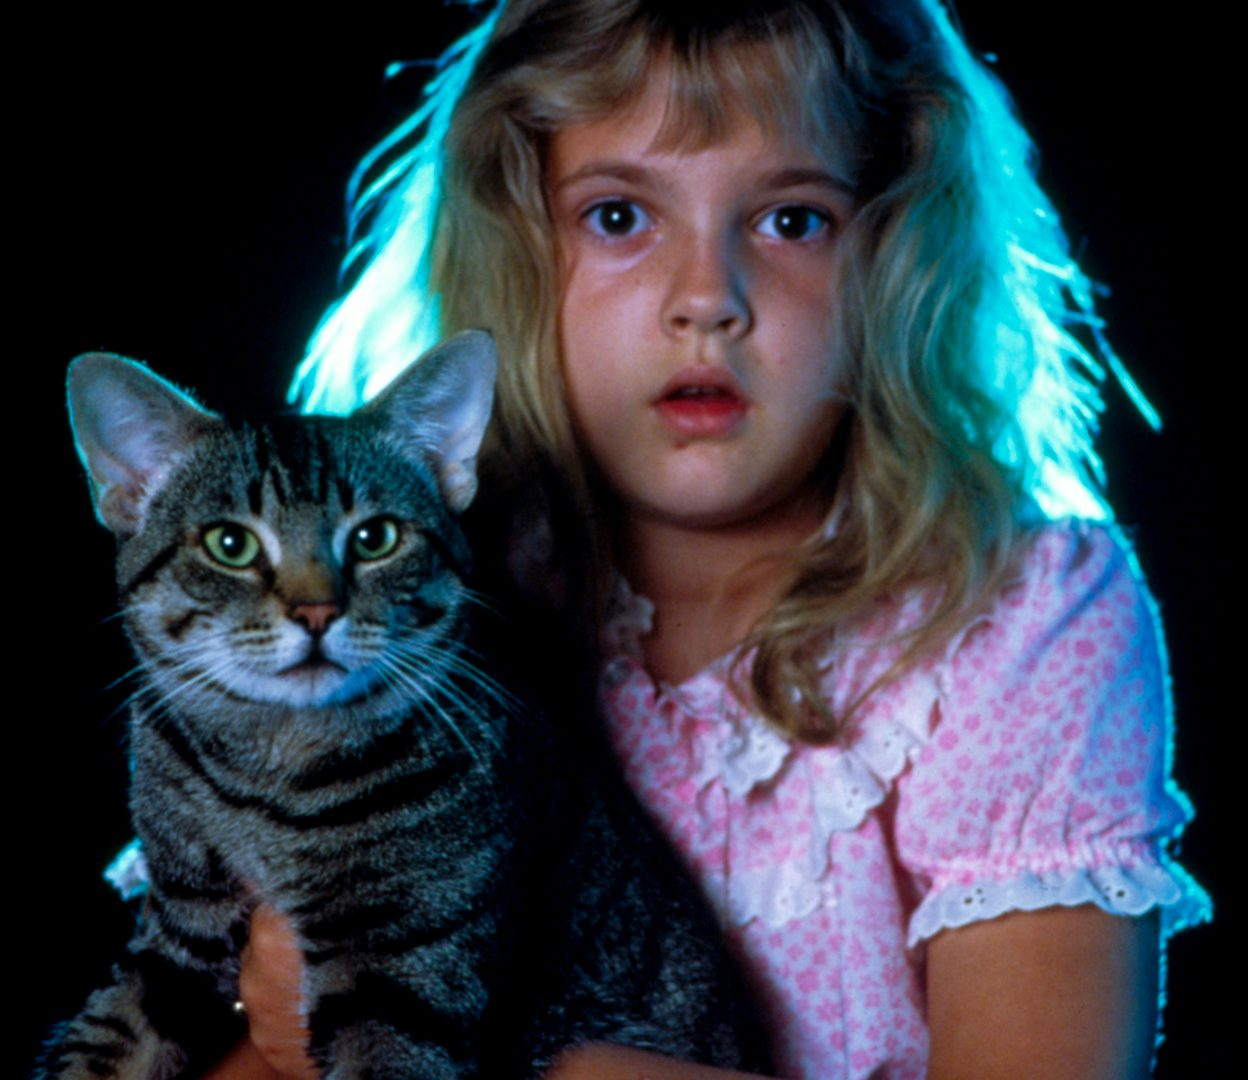 Cats eye e1605273054362 15 Stephen King Films Better Than The Books They Were Based On, And 15 That Were Worse